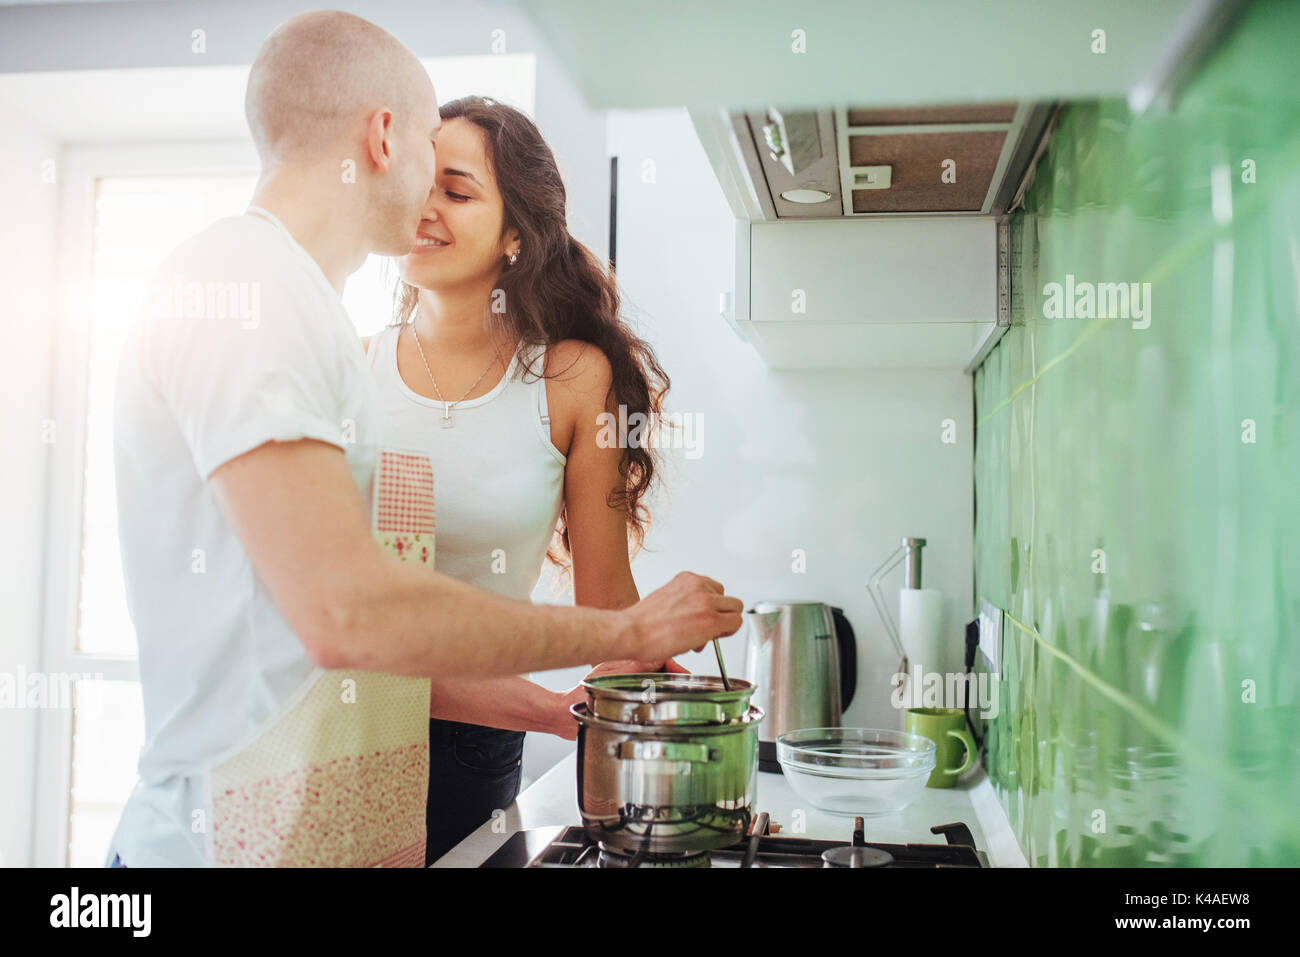 Happy young couple en train de préparer sur la cuisinière Photo Stock